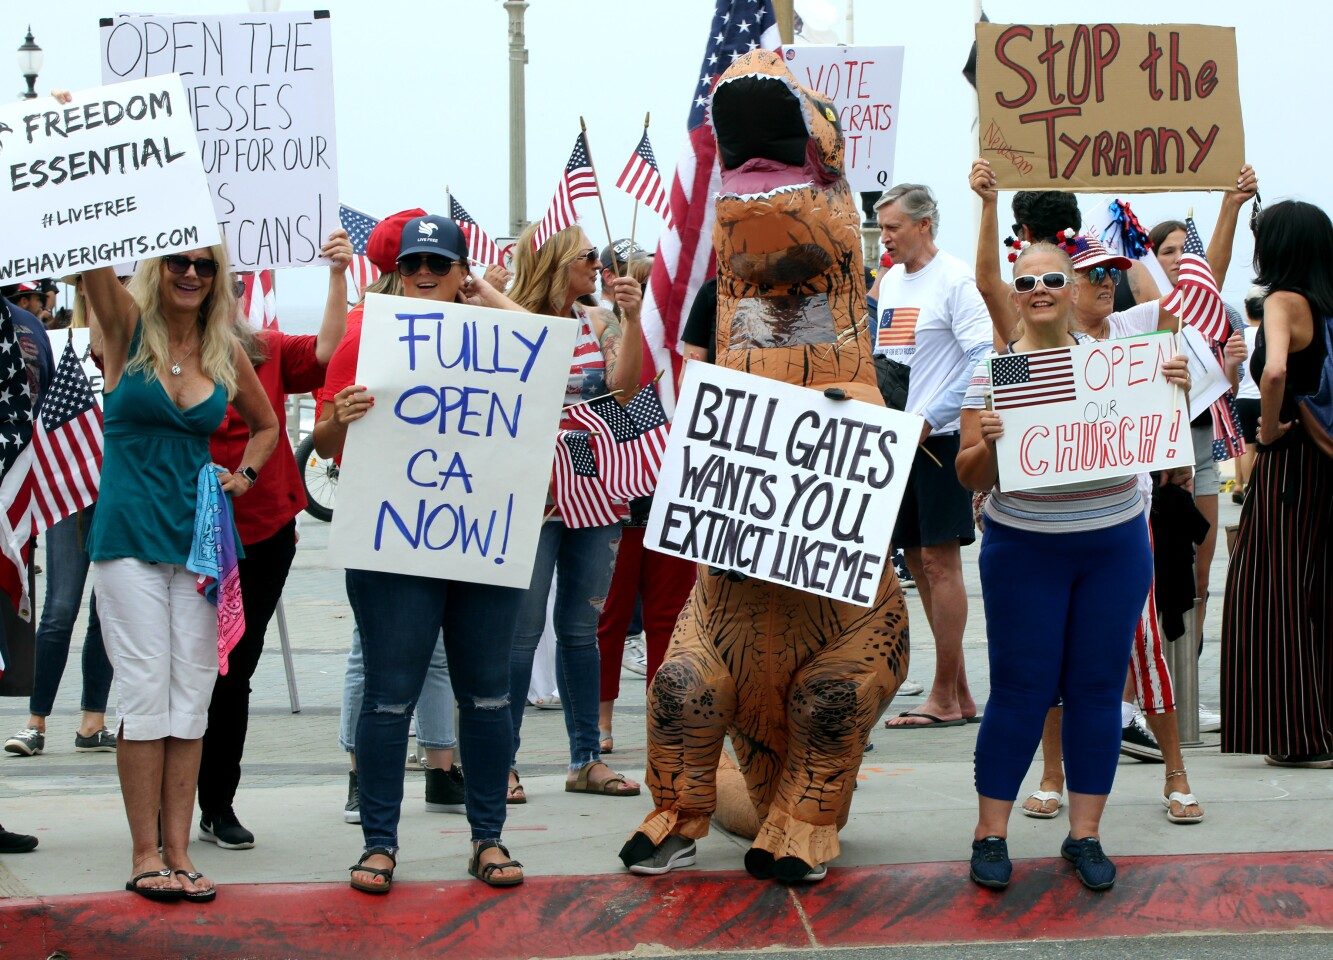 Protesters hold signs with various messages during Saturday's protest to open the state of California at Pier Plaza in Huntington Beach.